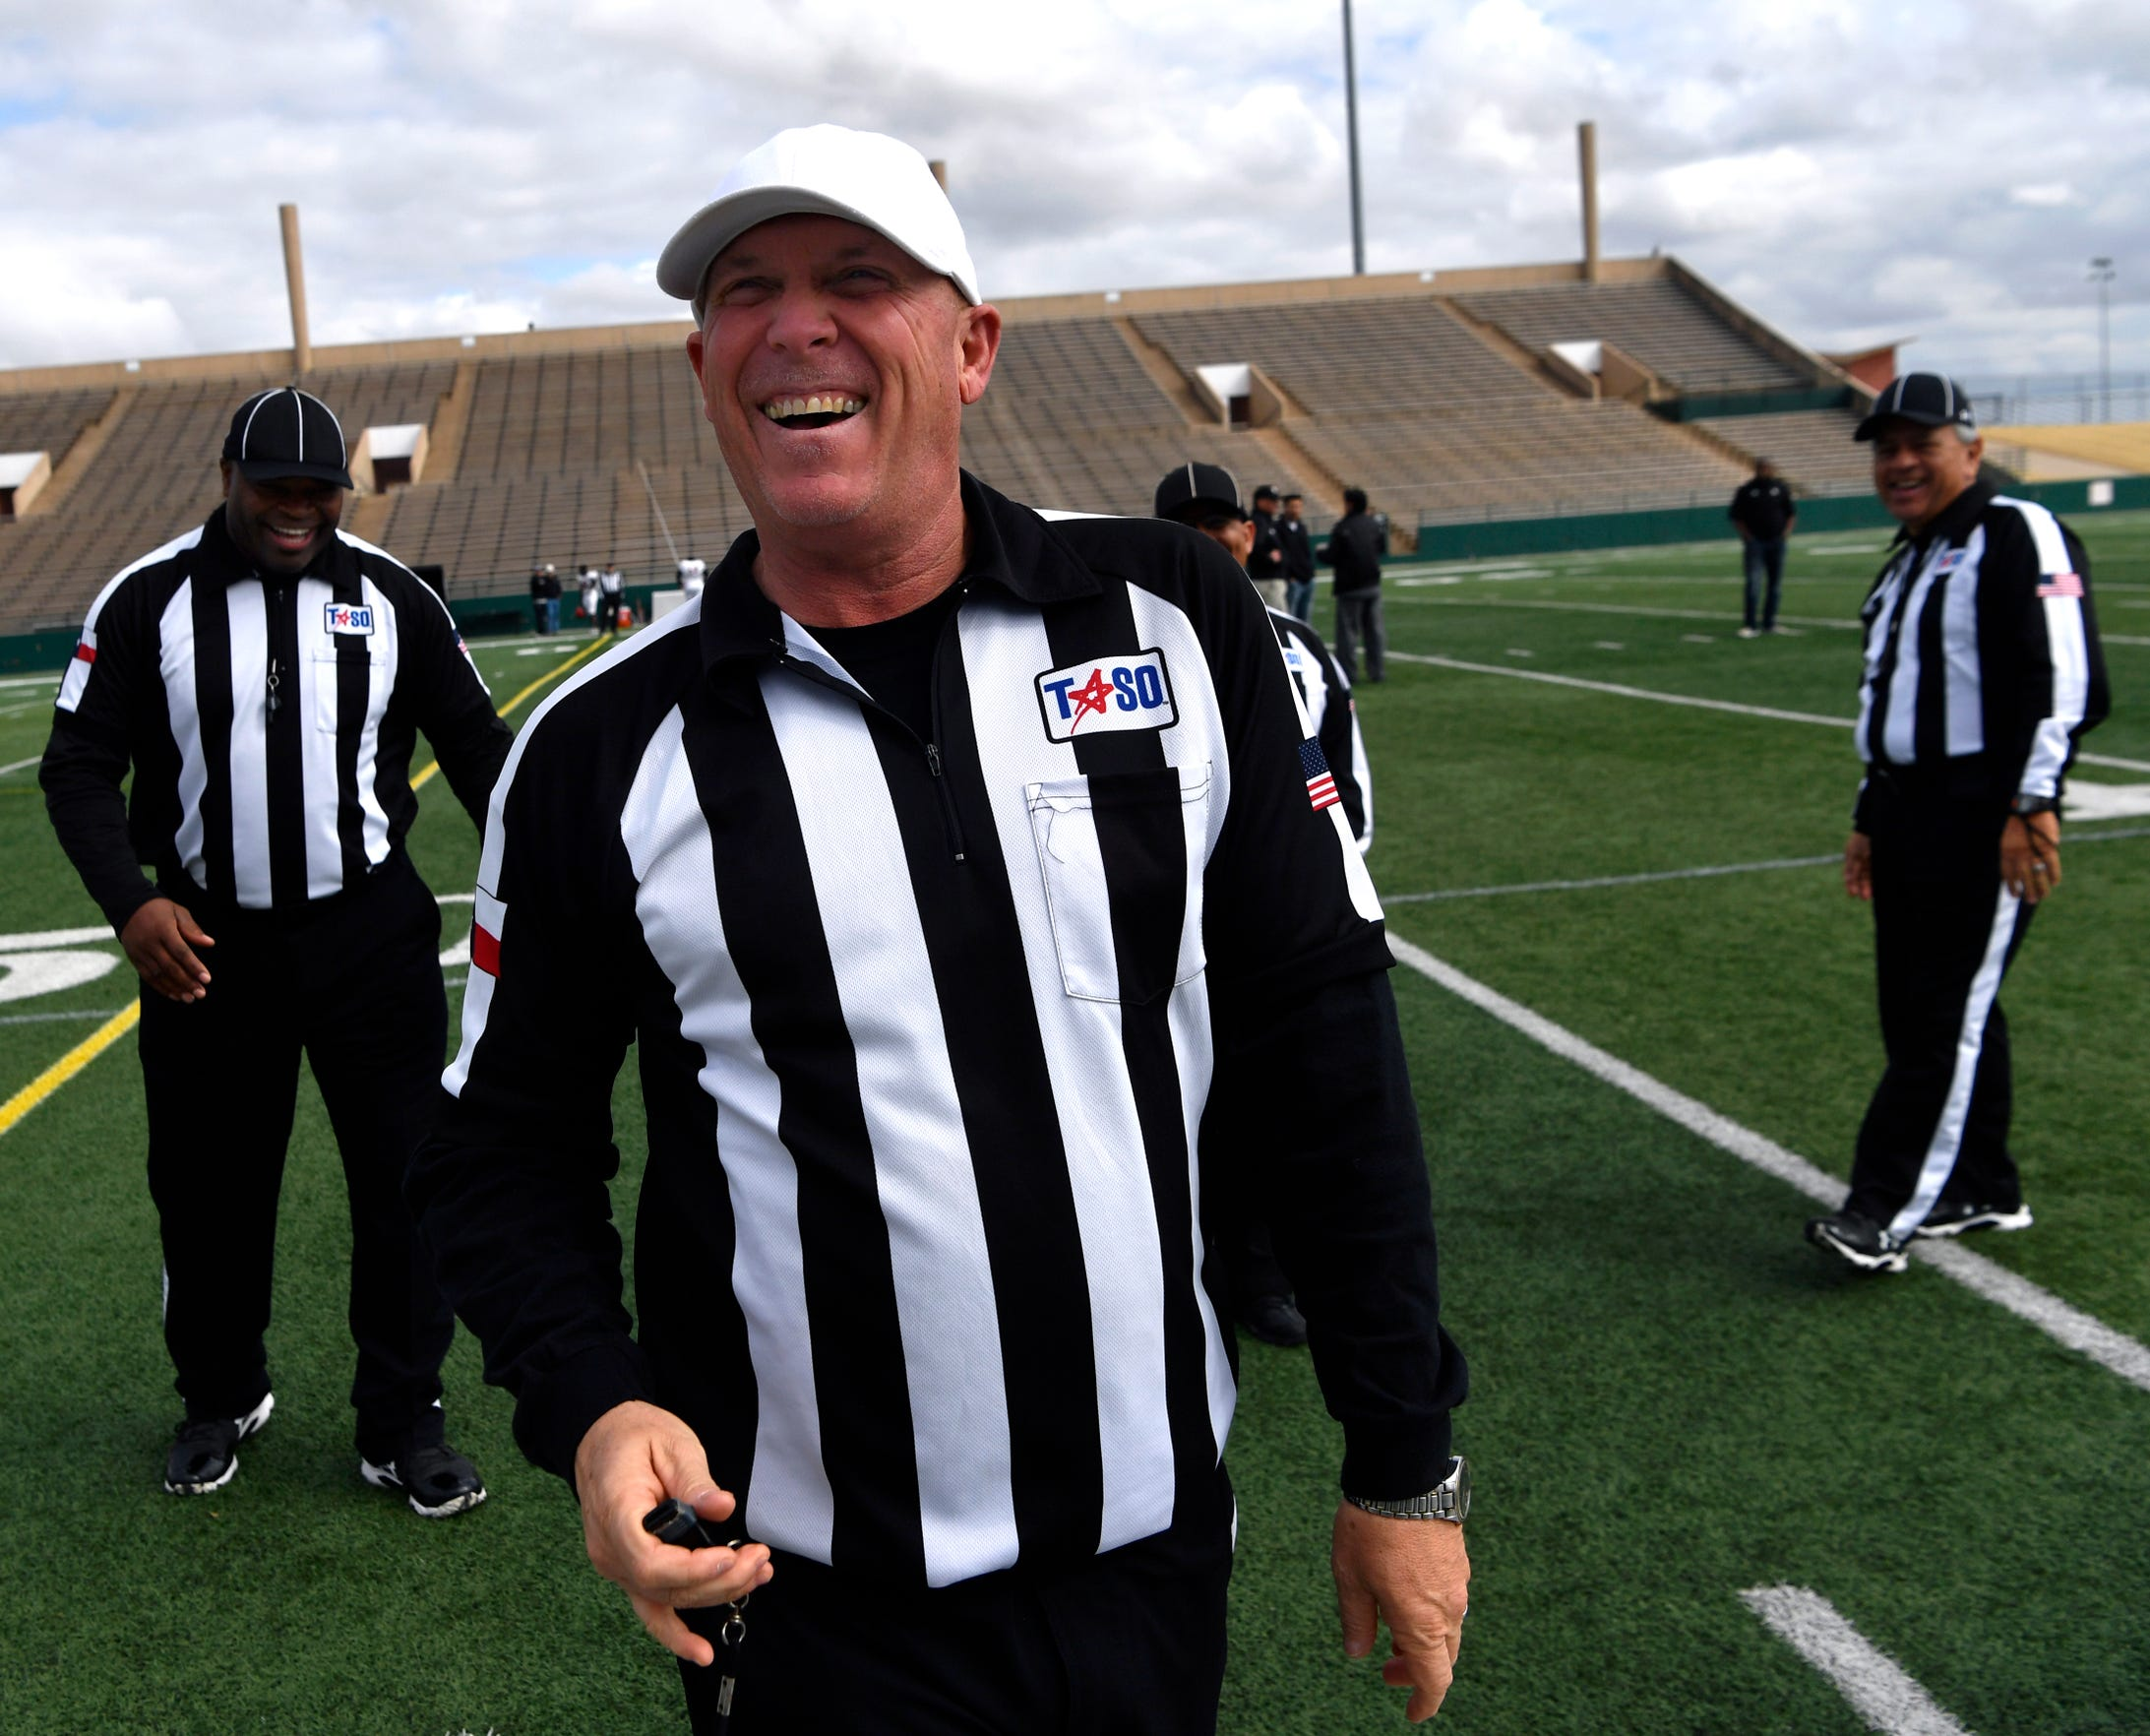 """Former Abilene High School head football coach Steve Warren waits for filming to begin Feb. 2 at Shotwell Stadium. Warren was head coach during the Eagles' 2009 championship season, on which the movie """"Brother's Keeper"""" is based."""